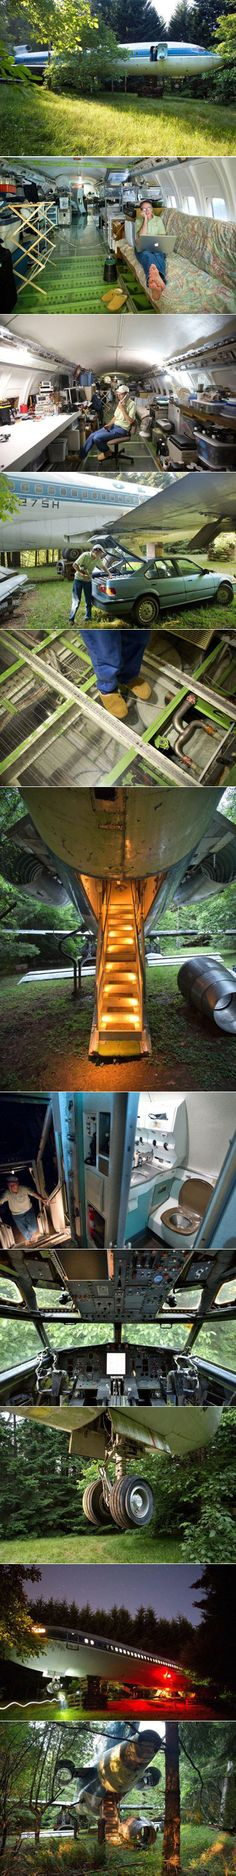 Bruce Campbell (Not the bad ass Ash from the Evil Dead movies, sadly) is an electrical engineer who had a dream of creating an entire subdivision of retired airplanes, and he started with his own airplane house first. He purchased this retired Boeing 727 for $100,000 that now sits on a portion of his ten-acre lot in Portland, Oregon.